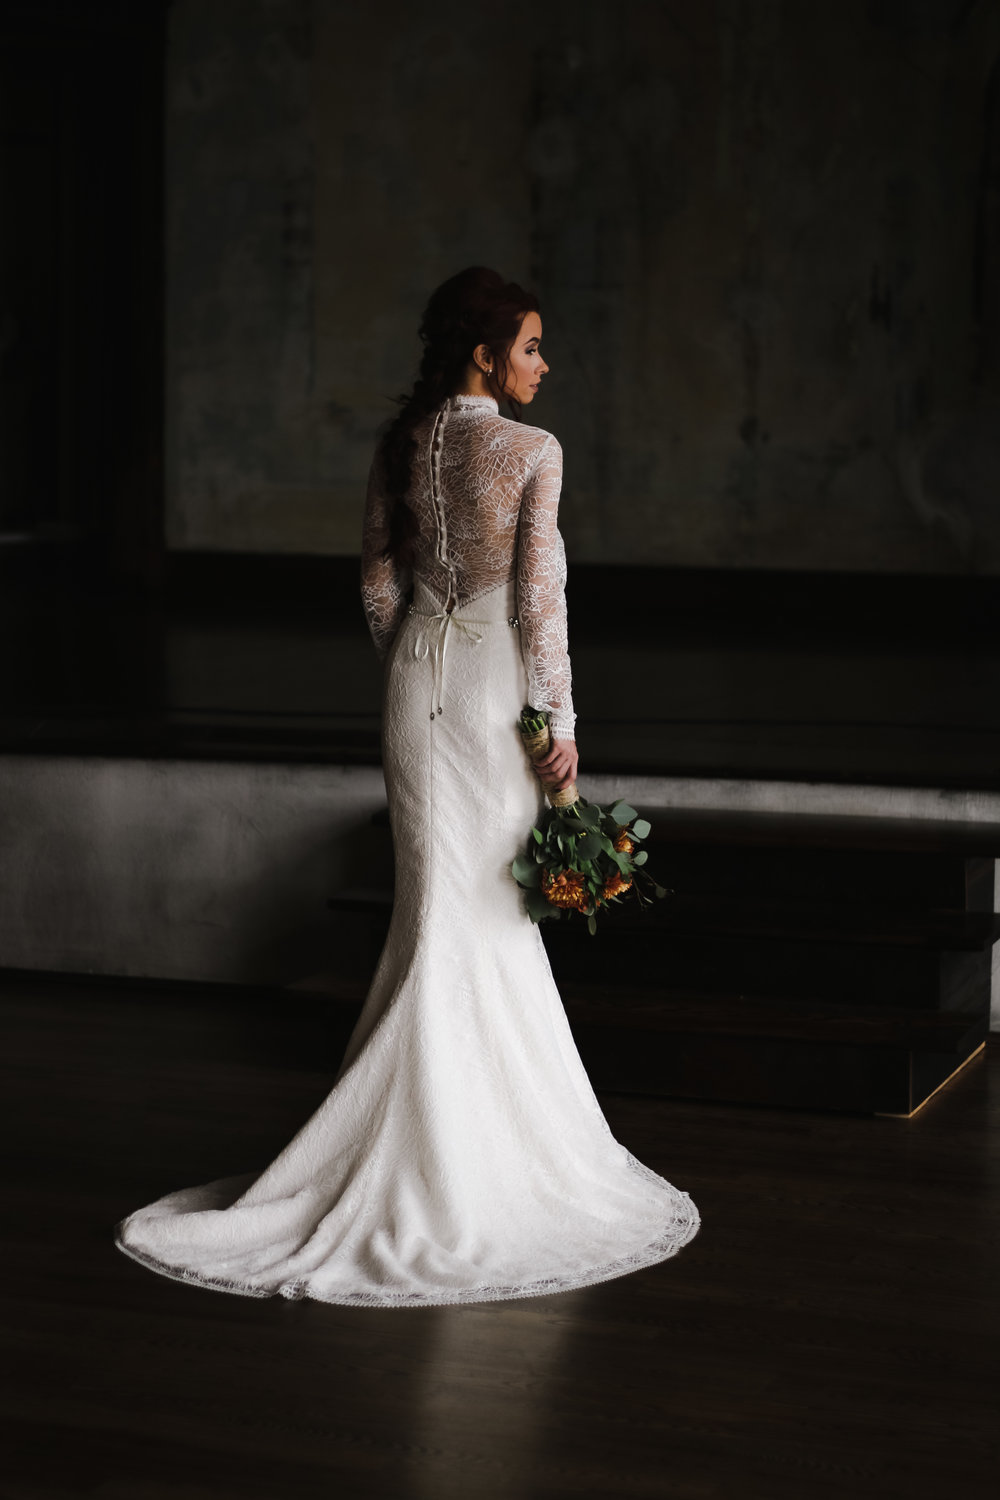 Wedding Planning Tips for Brides Trendy In Indy